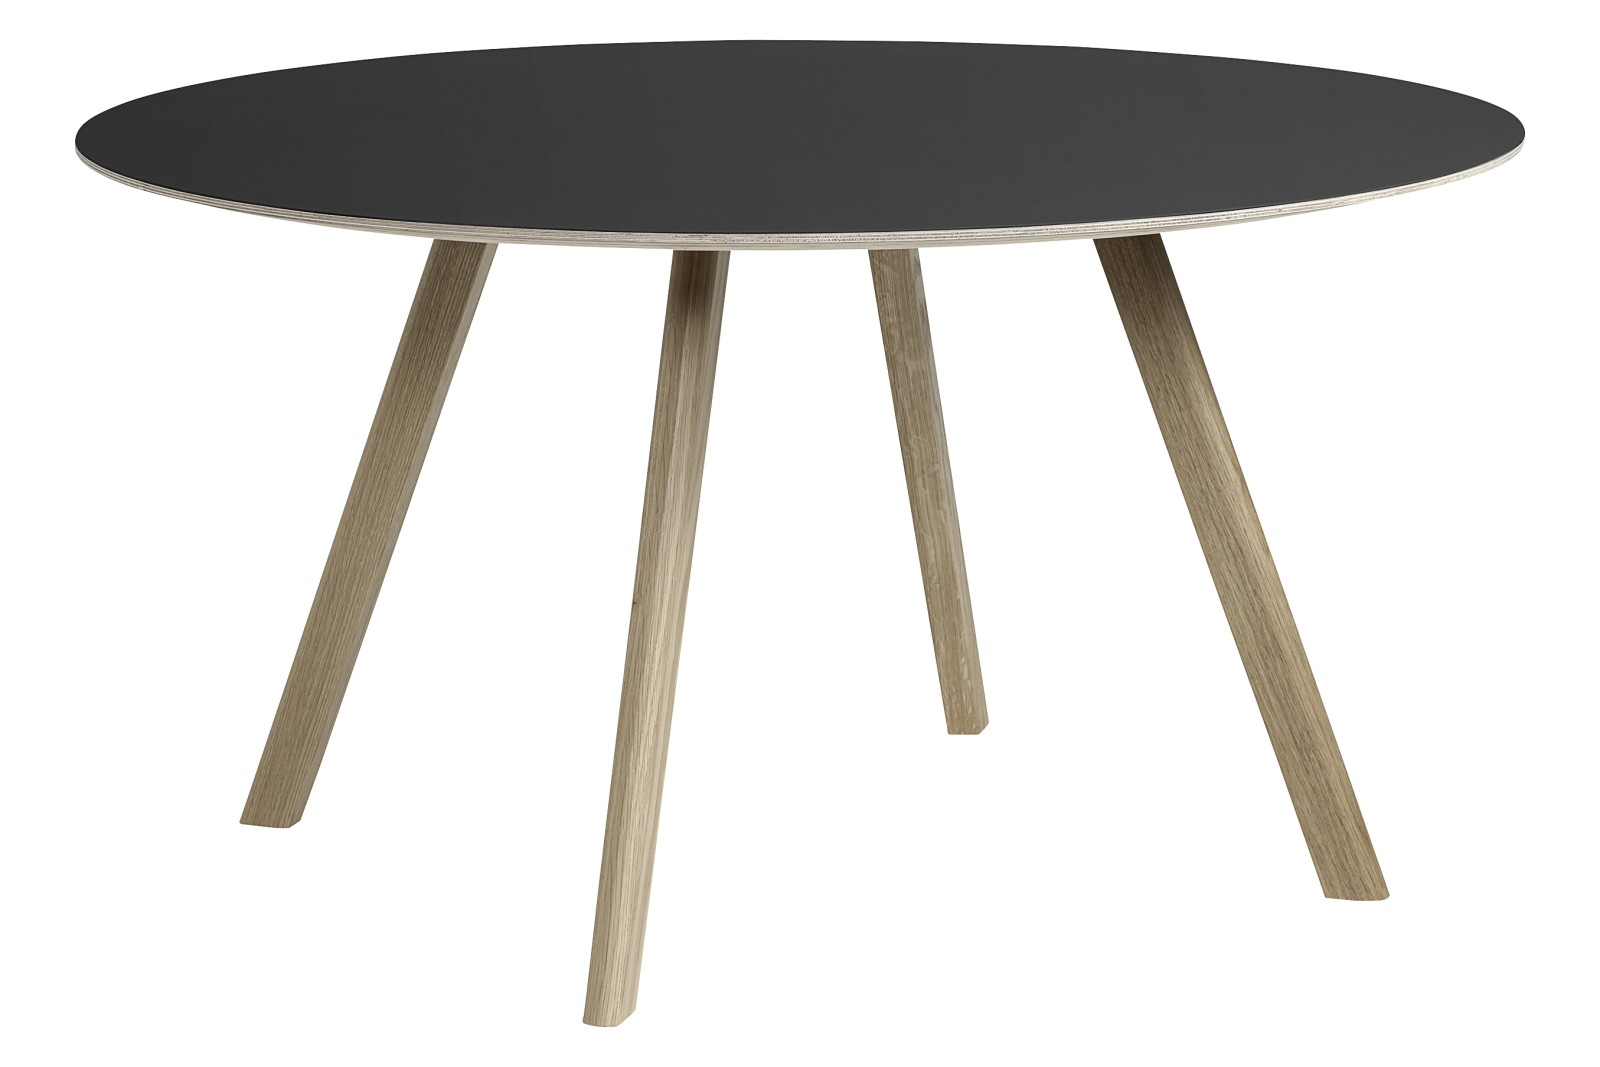 CPH 25 Round Dining Table Linoleum Black / Wood Soaped Oak